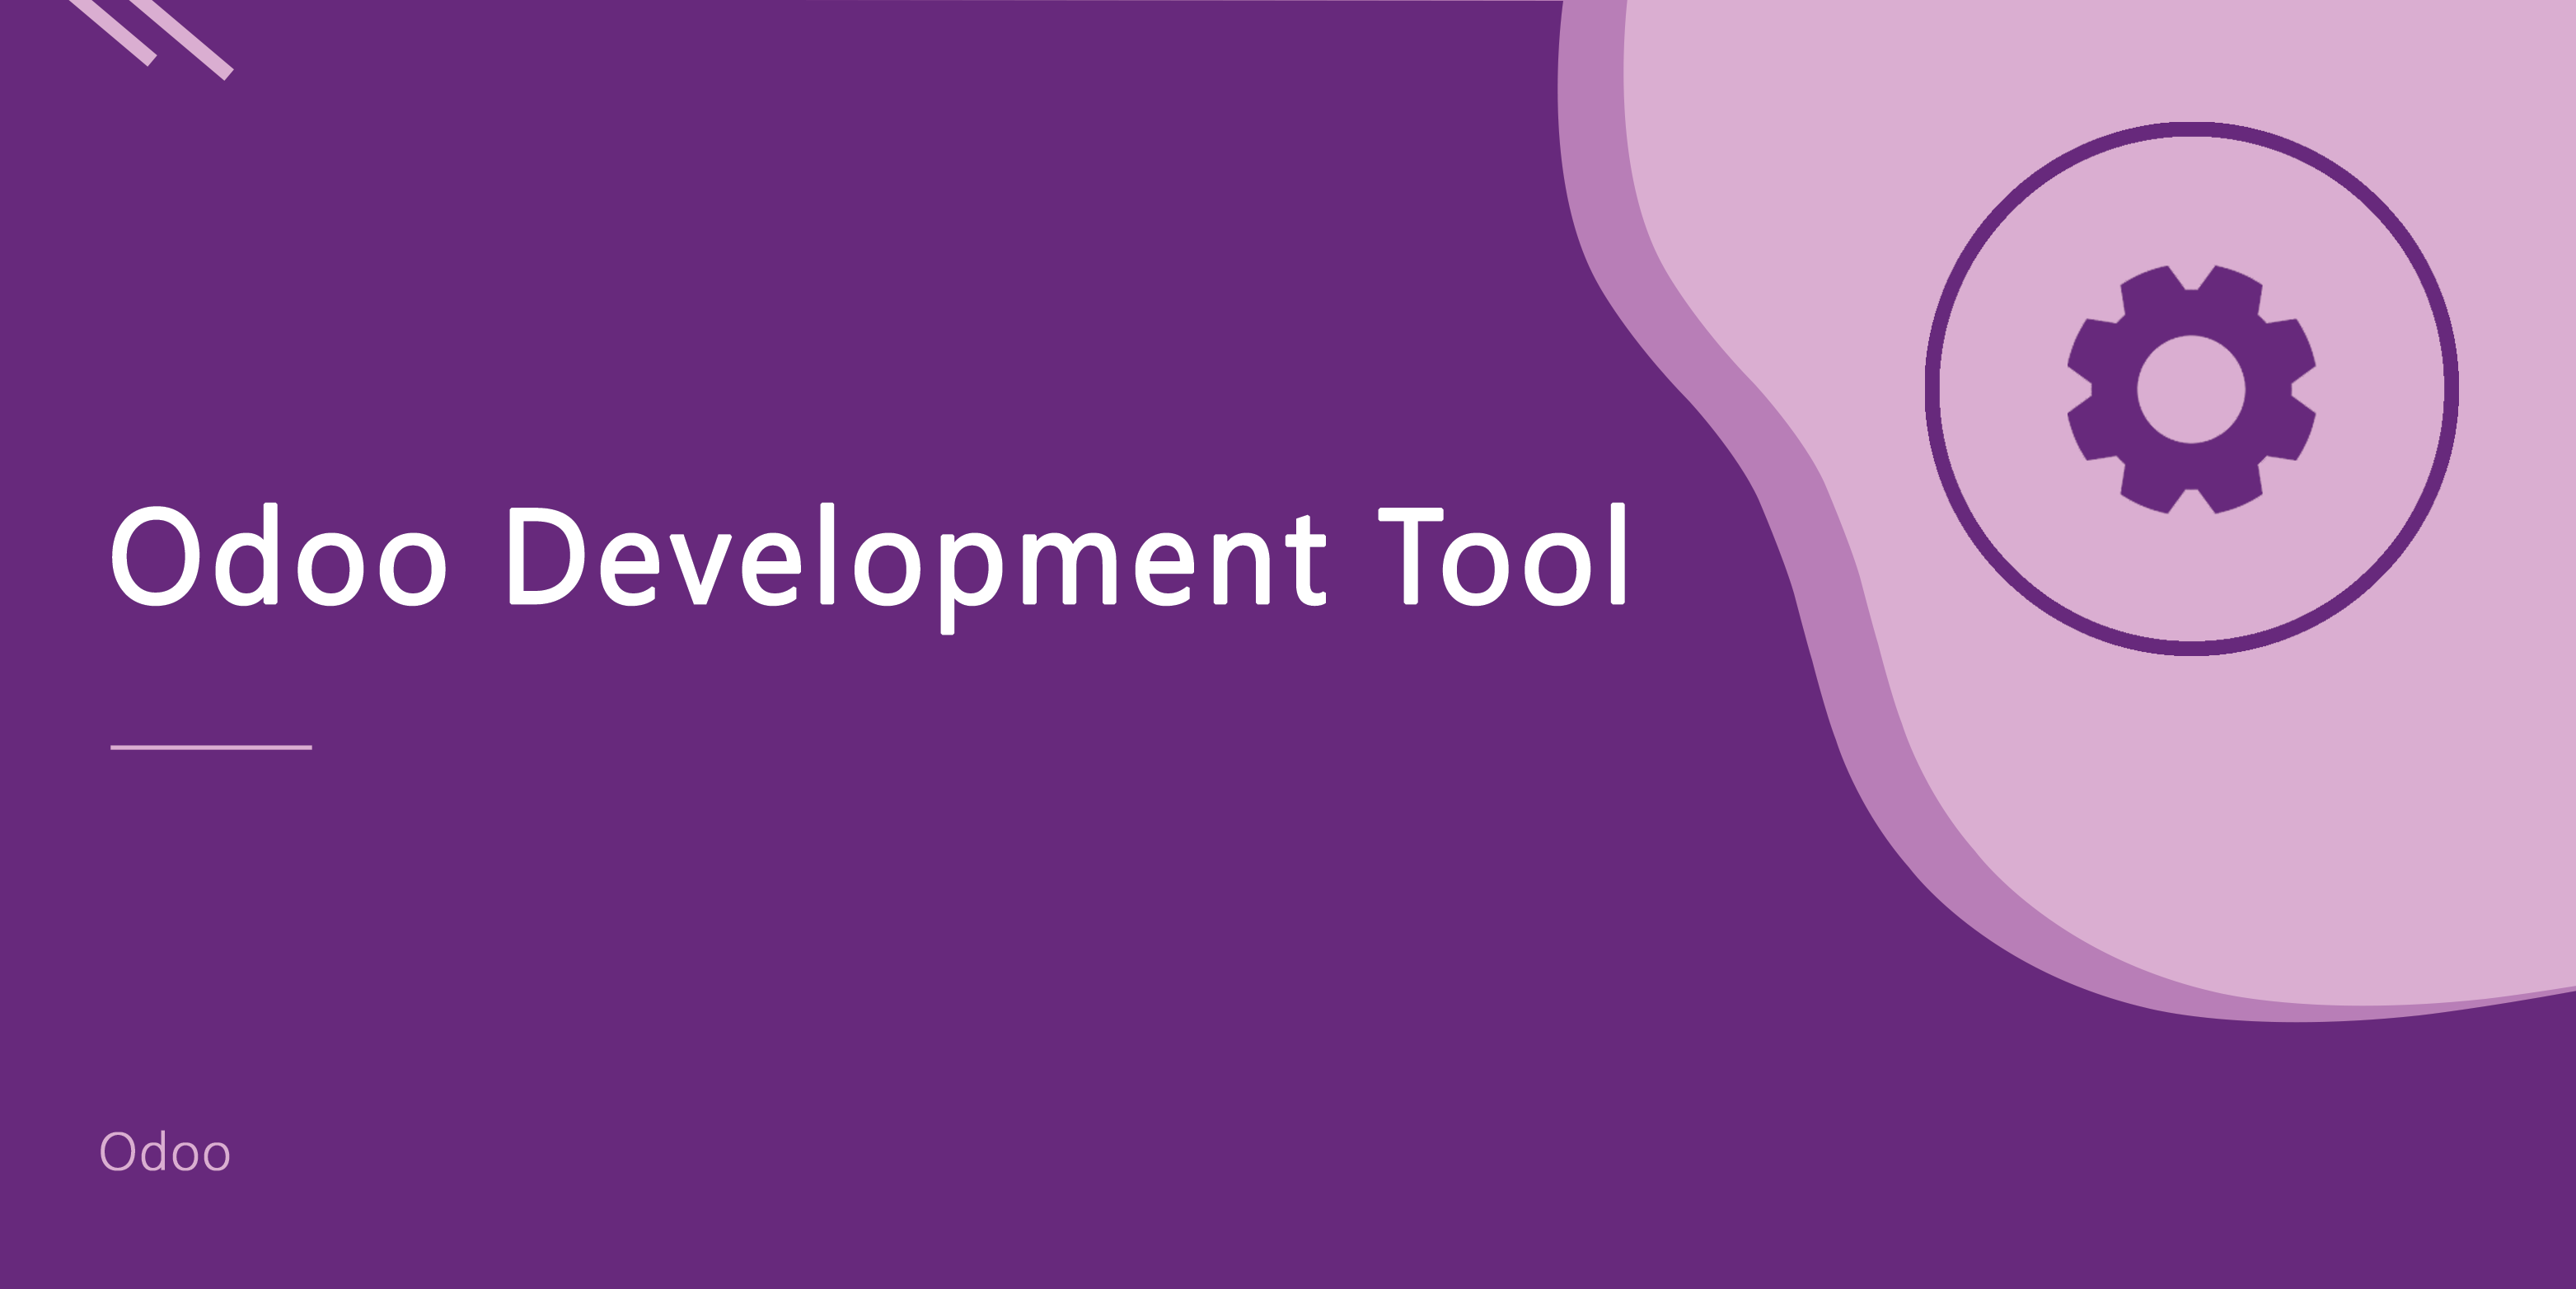 Odoo Development Tool